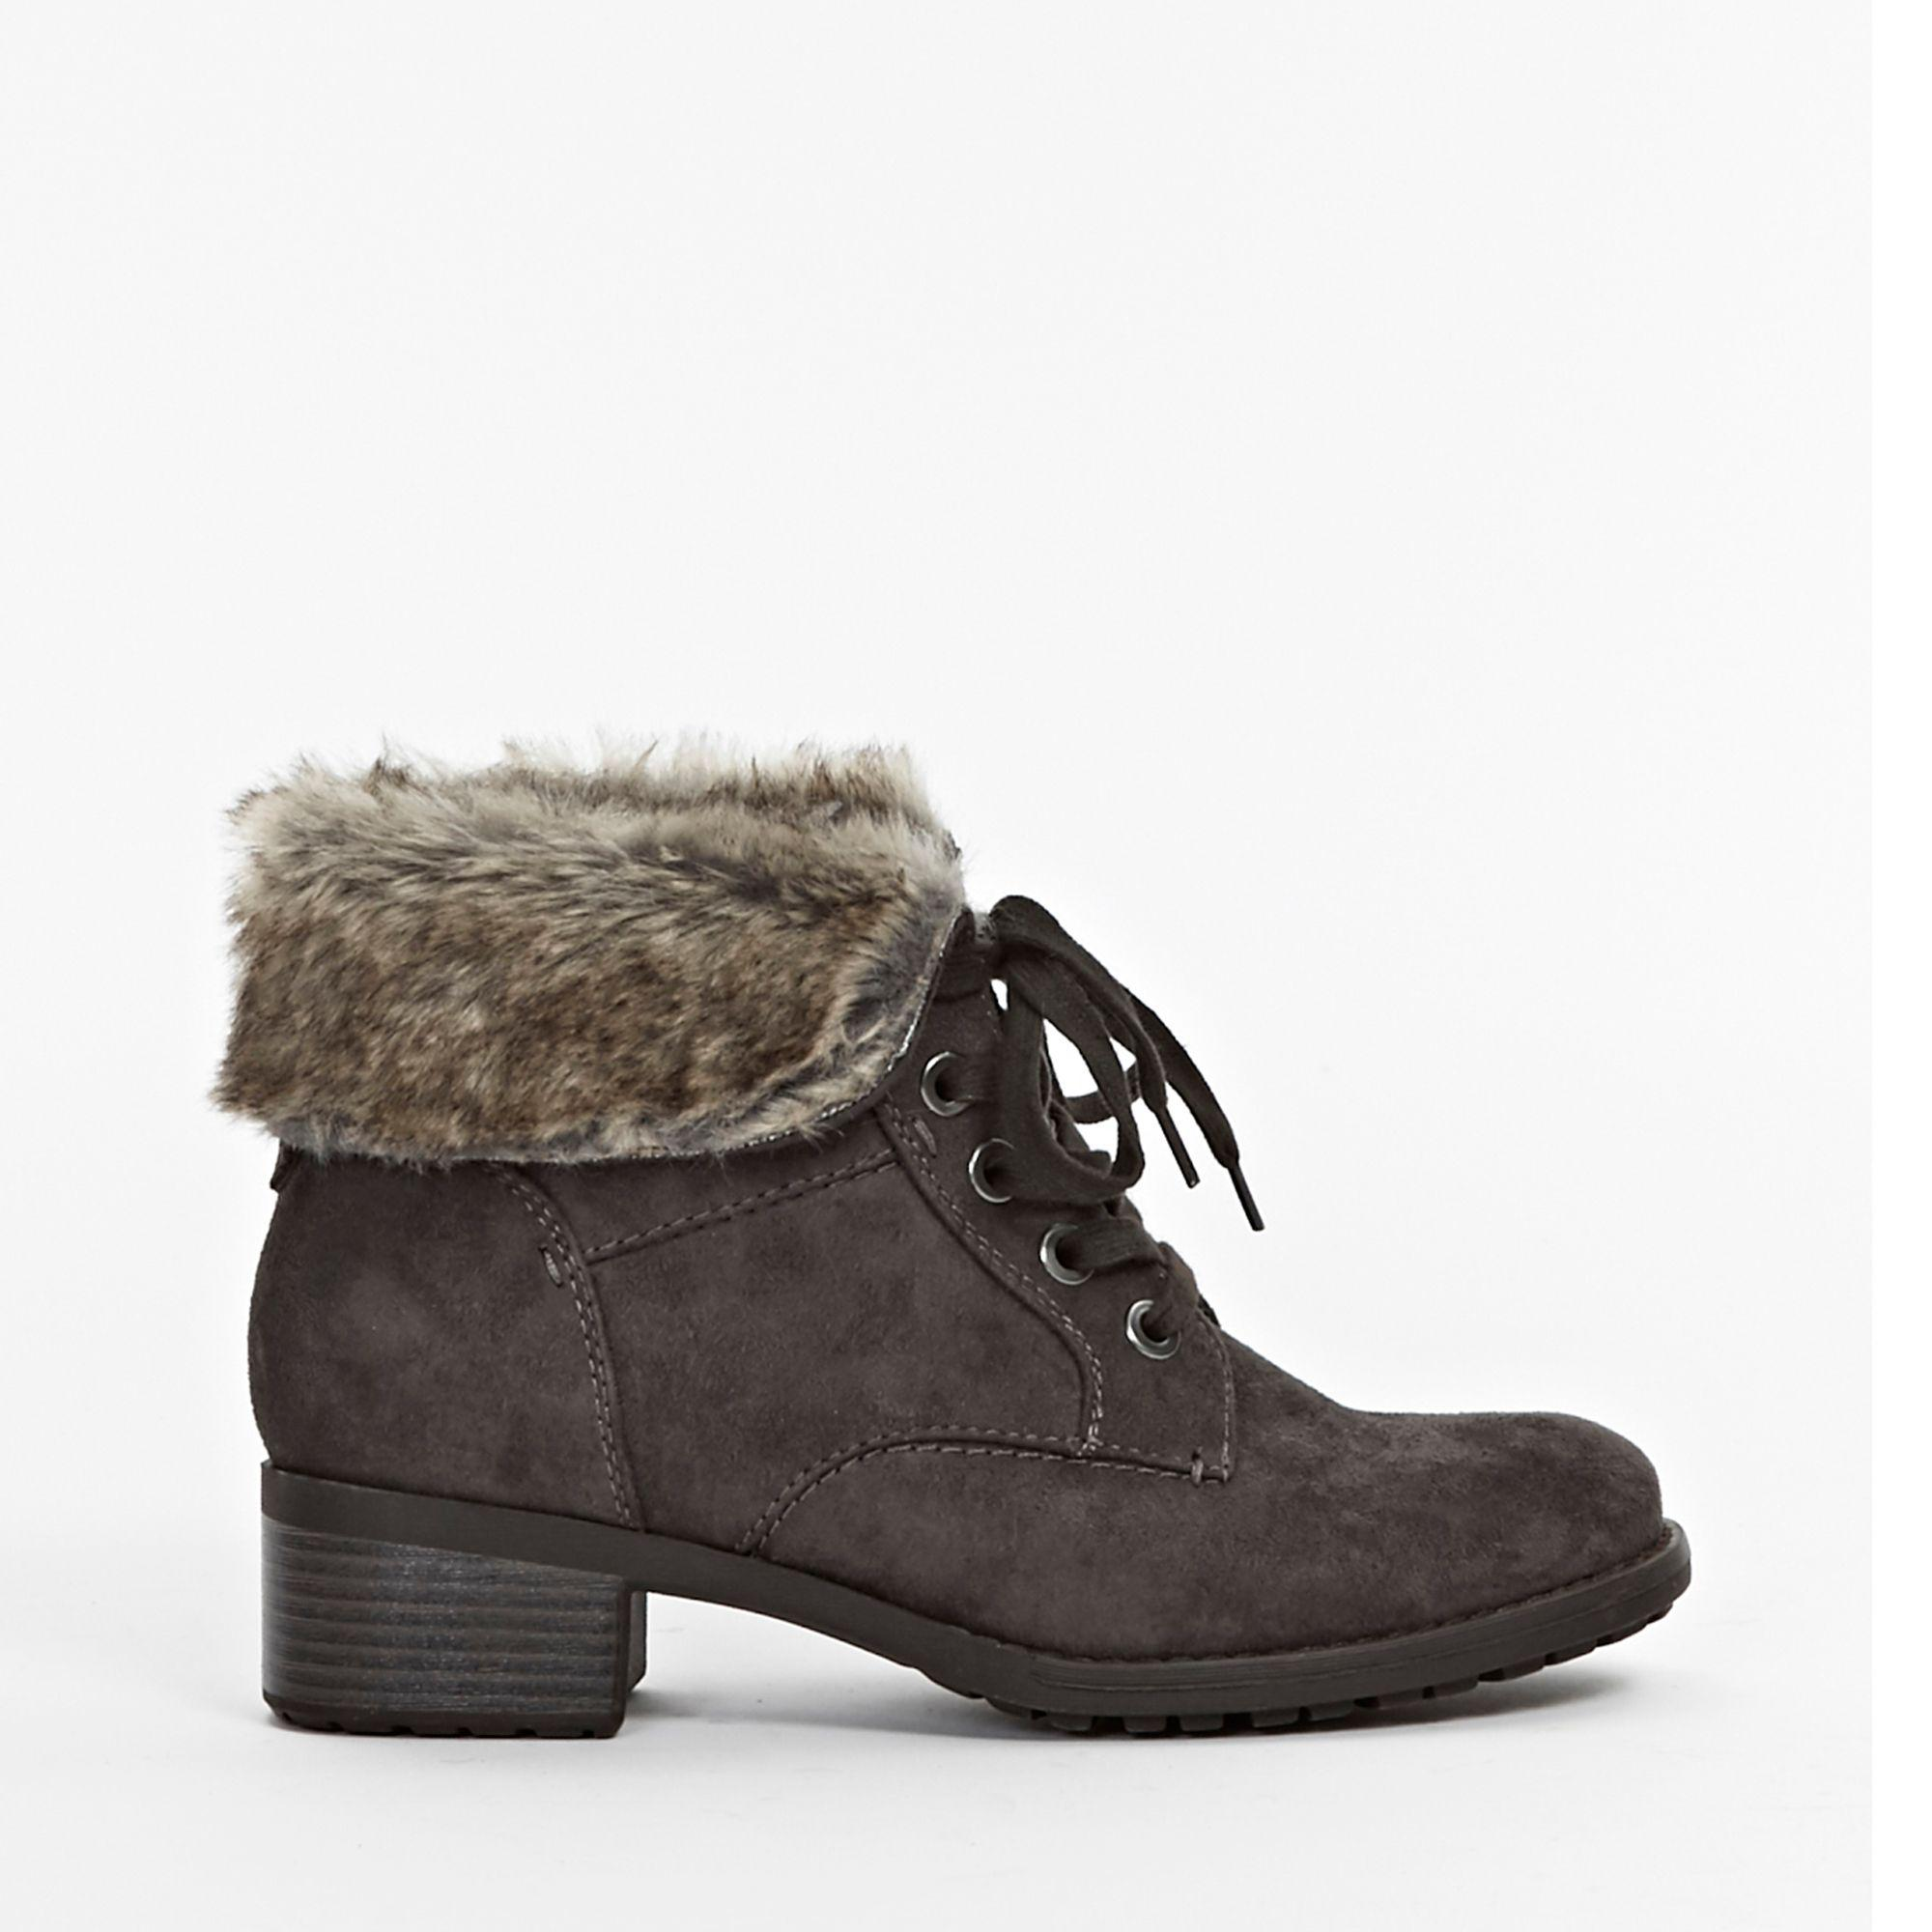 76e02b66961 Evans Wide Fit Grey Cuff Lace Up Ankle Boots in Gray - Save 79% - Lyst